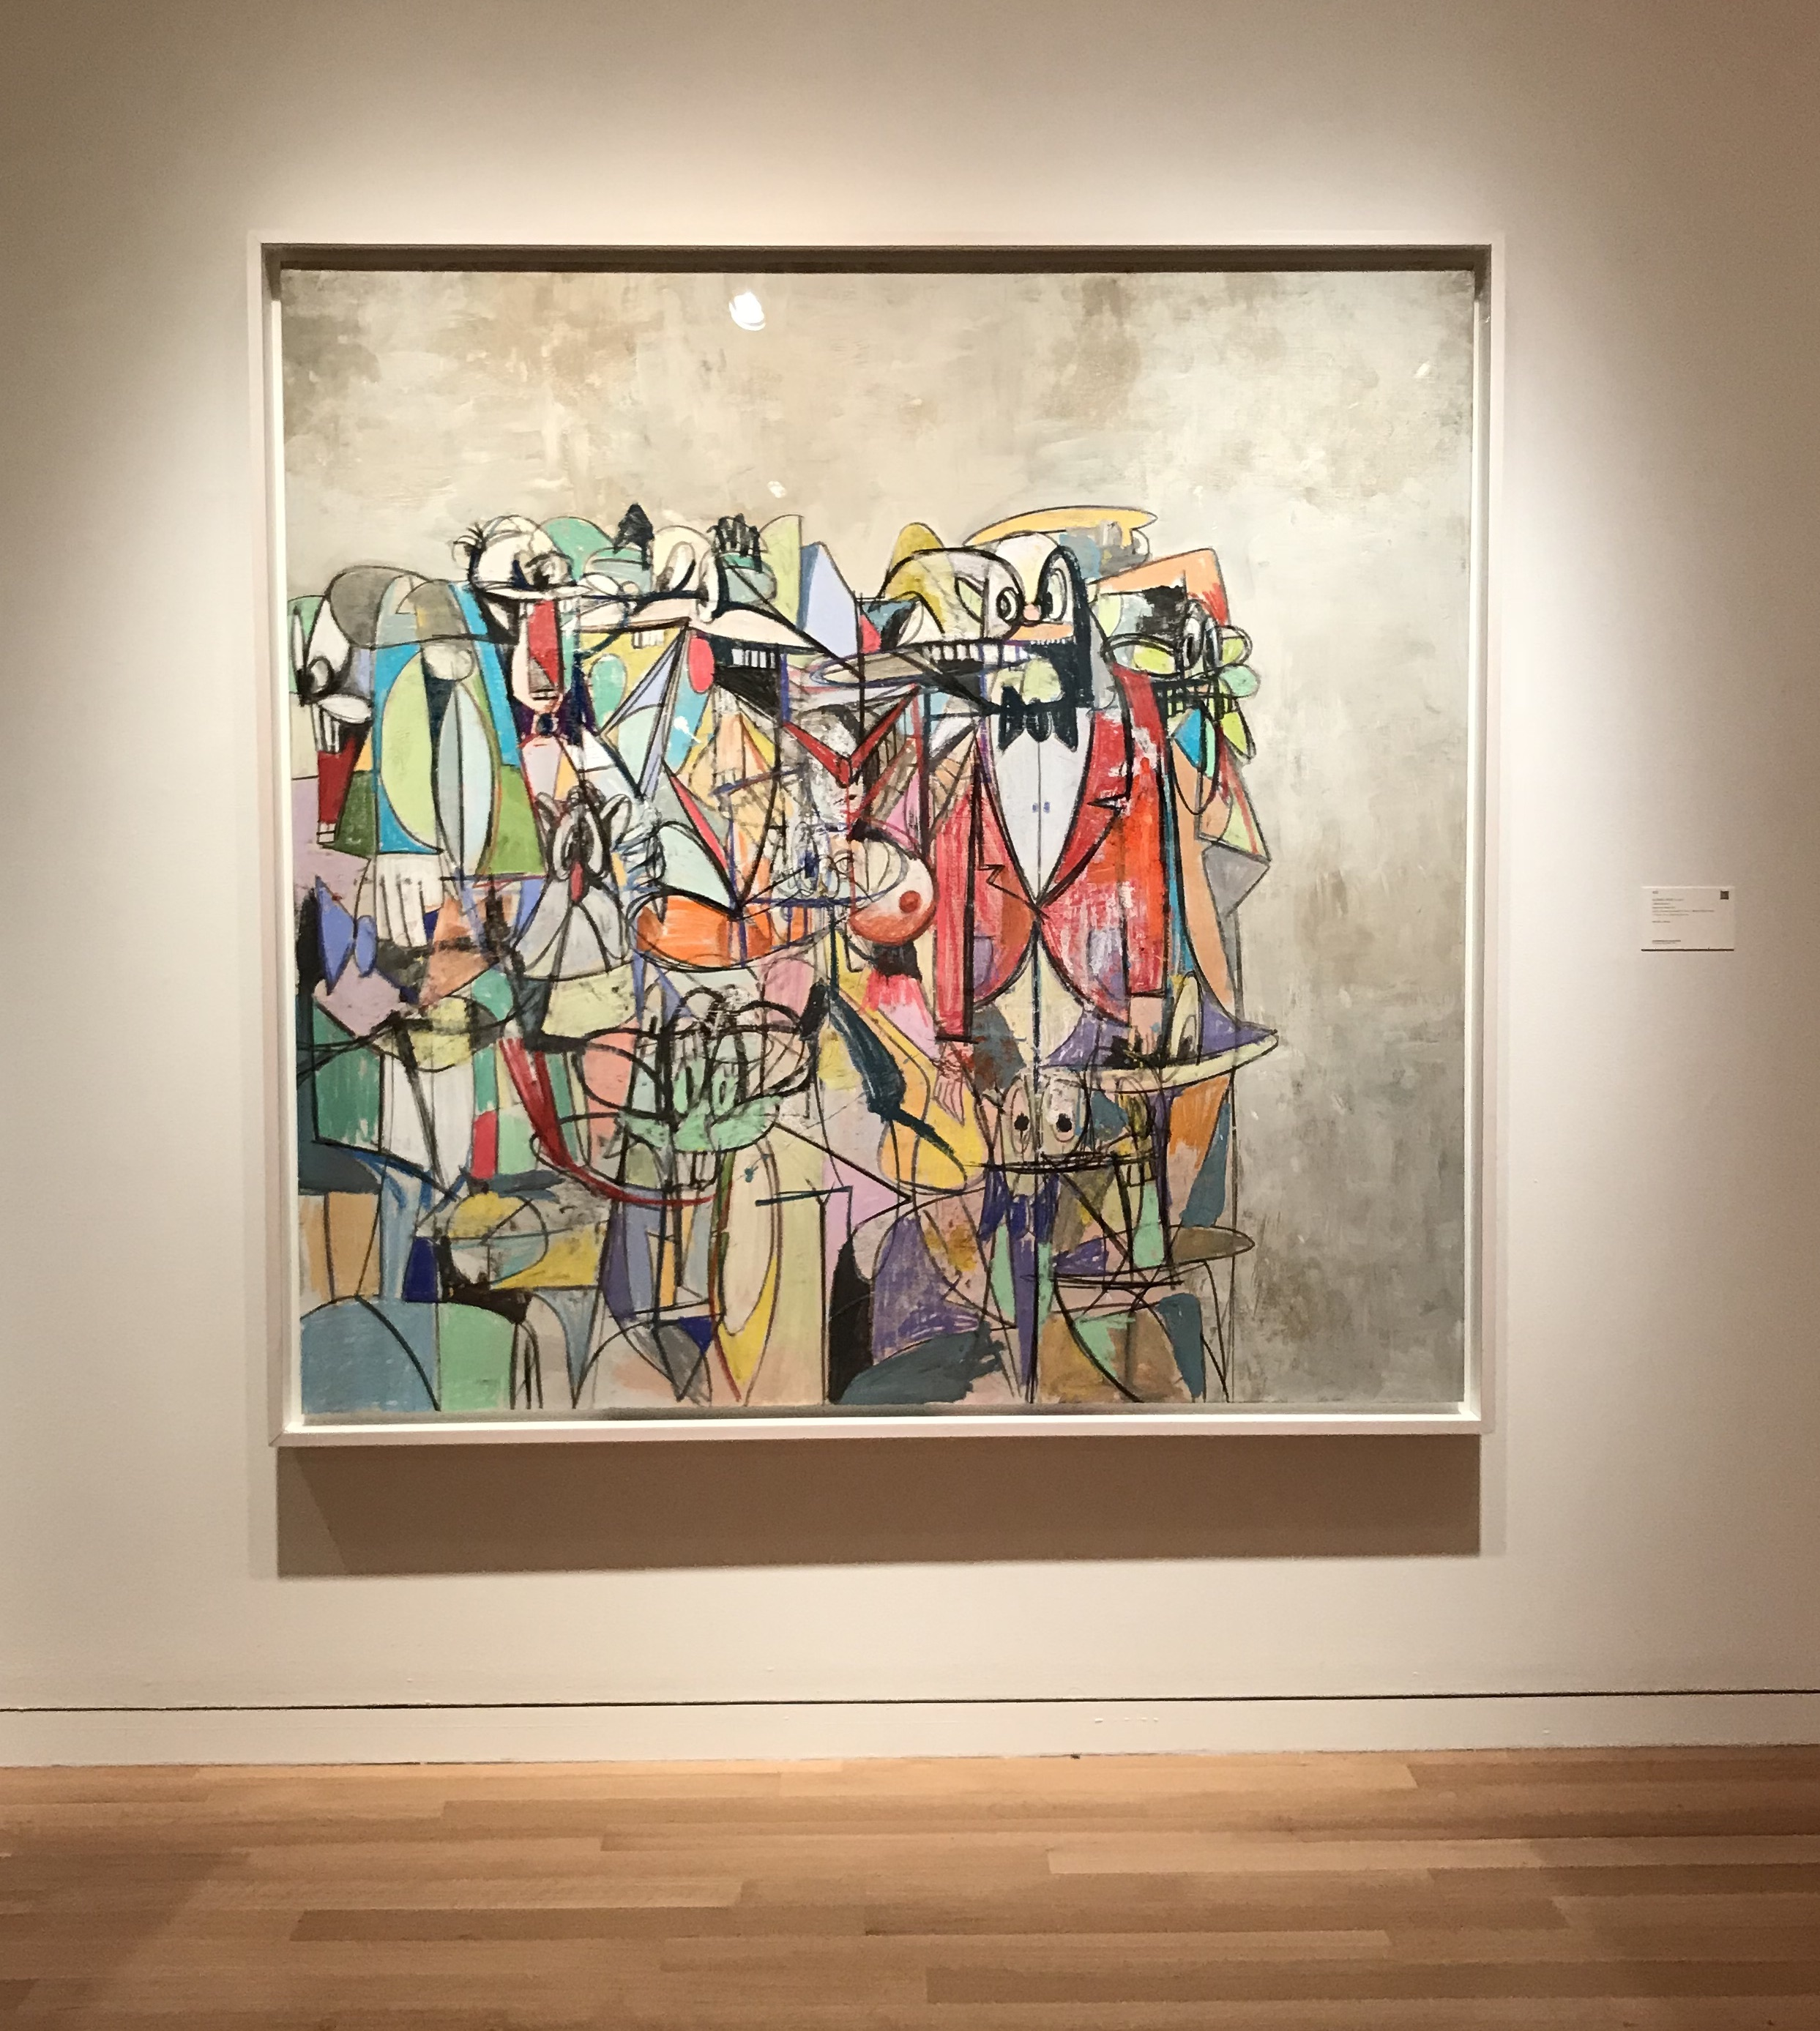 George Condo, Compression IV, 2011 at Sotheby's Day Sale